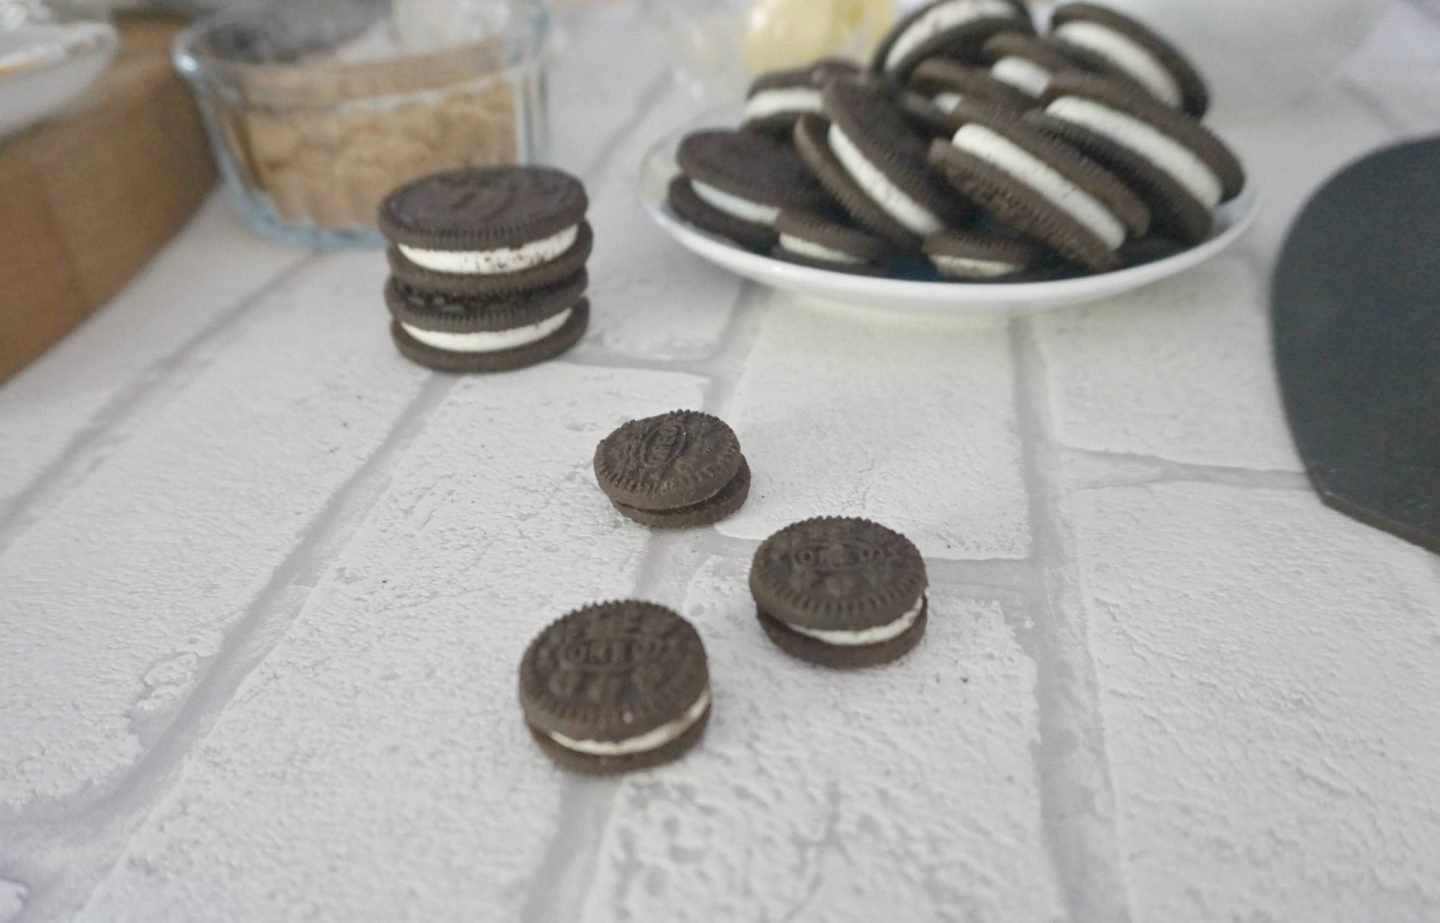 Oreo cookies for Oreo Cheesecake www.etraordinarychaos.com